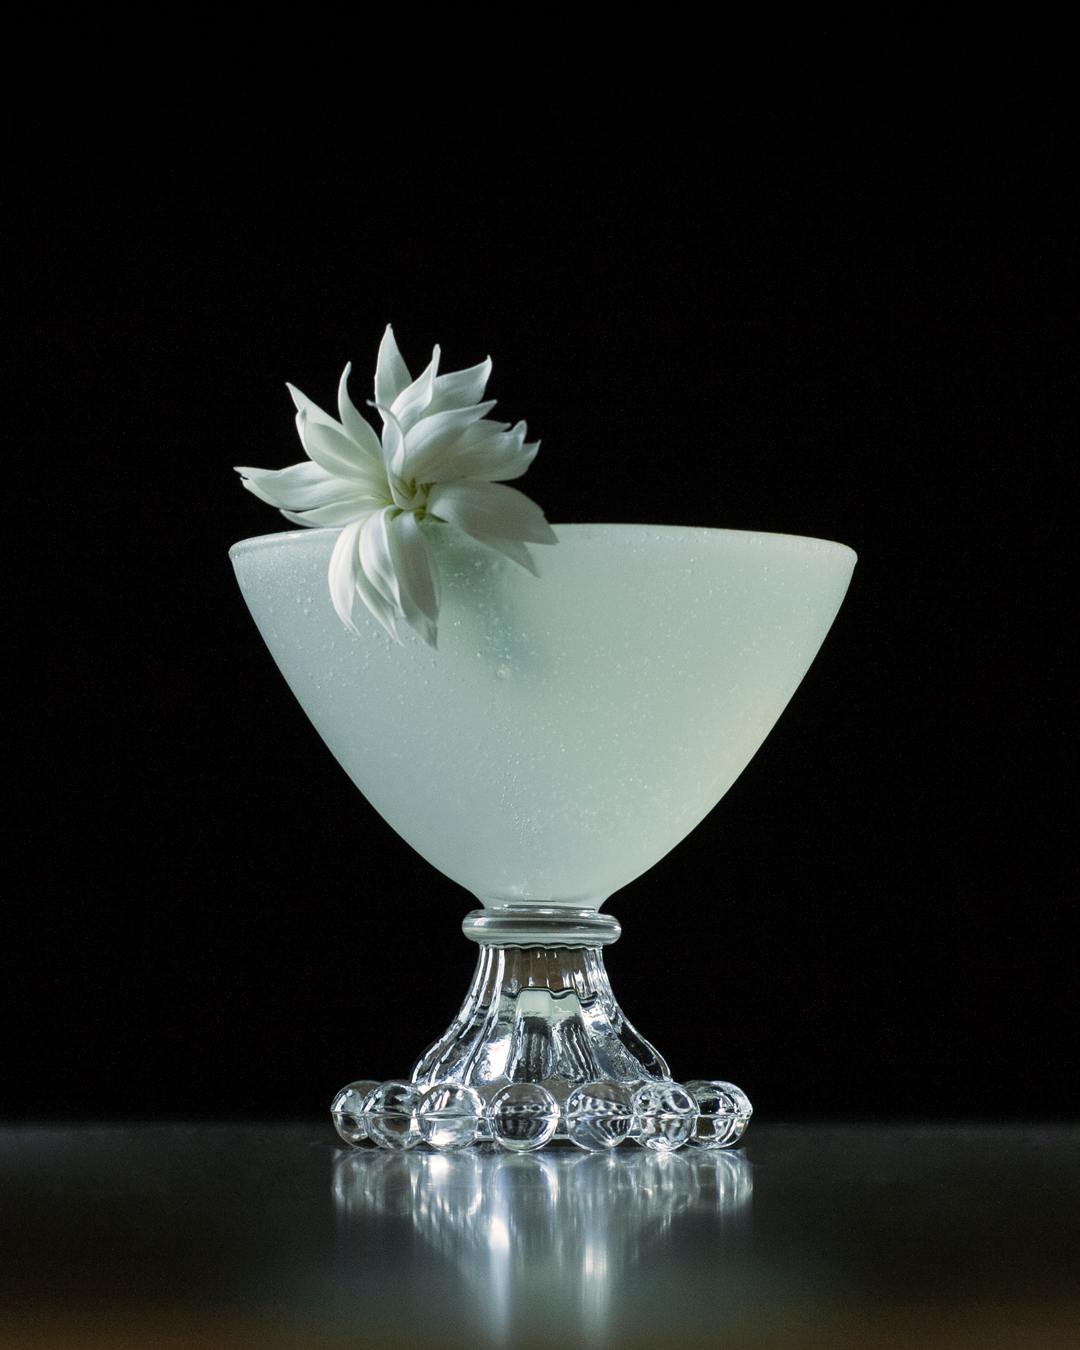 a white cocktail garnished with a white flower